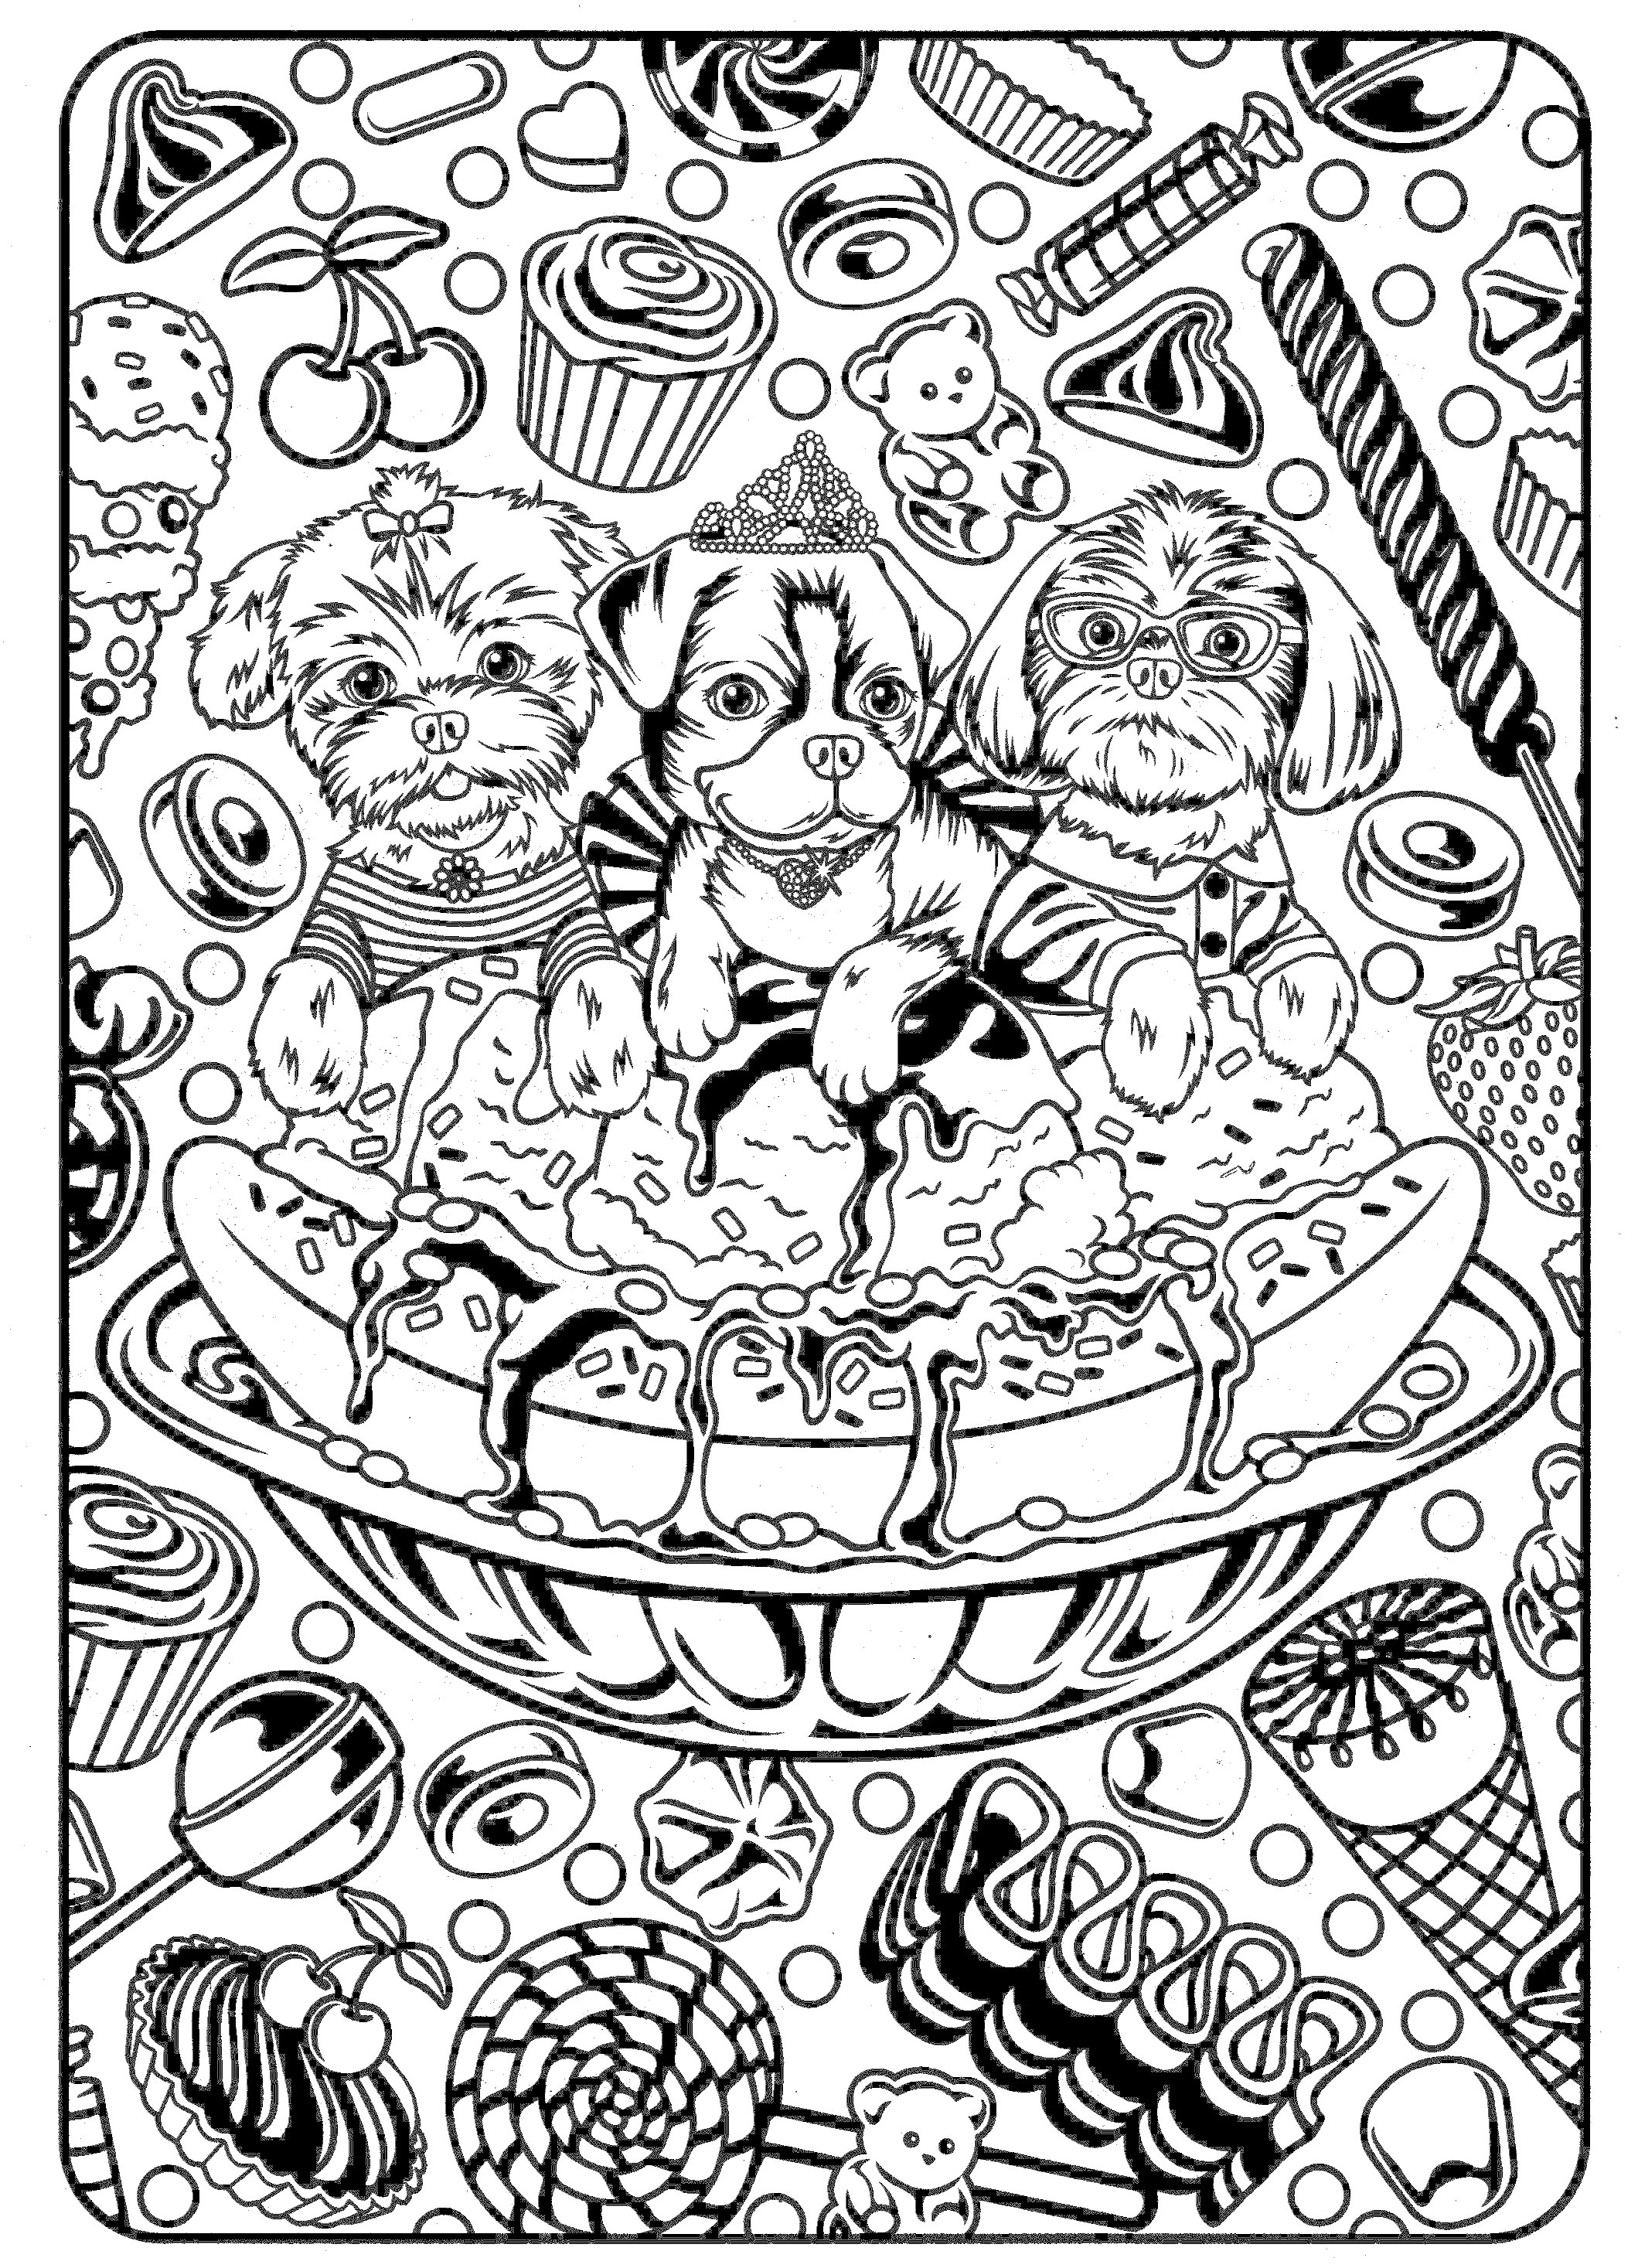 colouring in pages for teenagers cute coloring pages best coloring pages for kids for colouring in pages teenagers